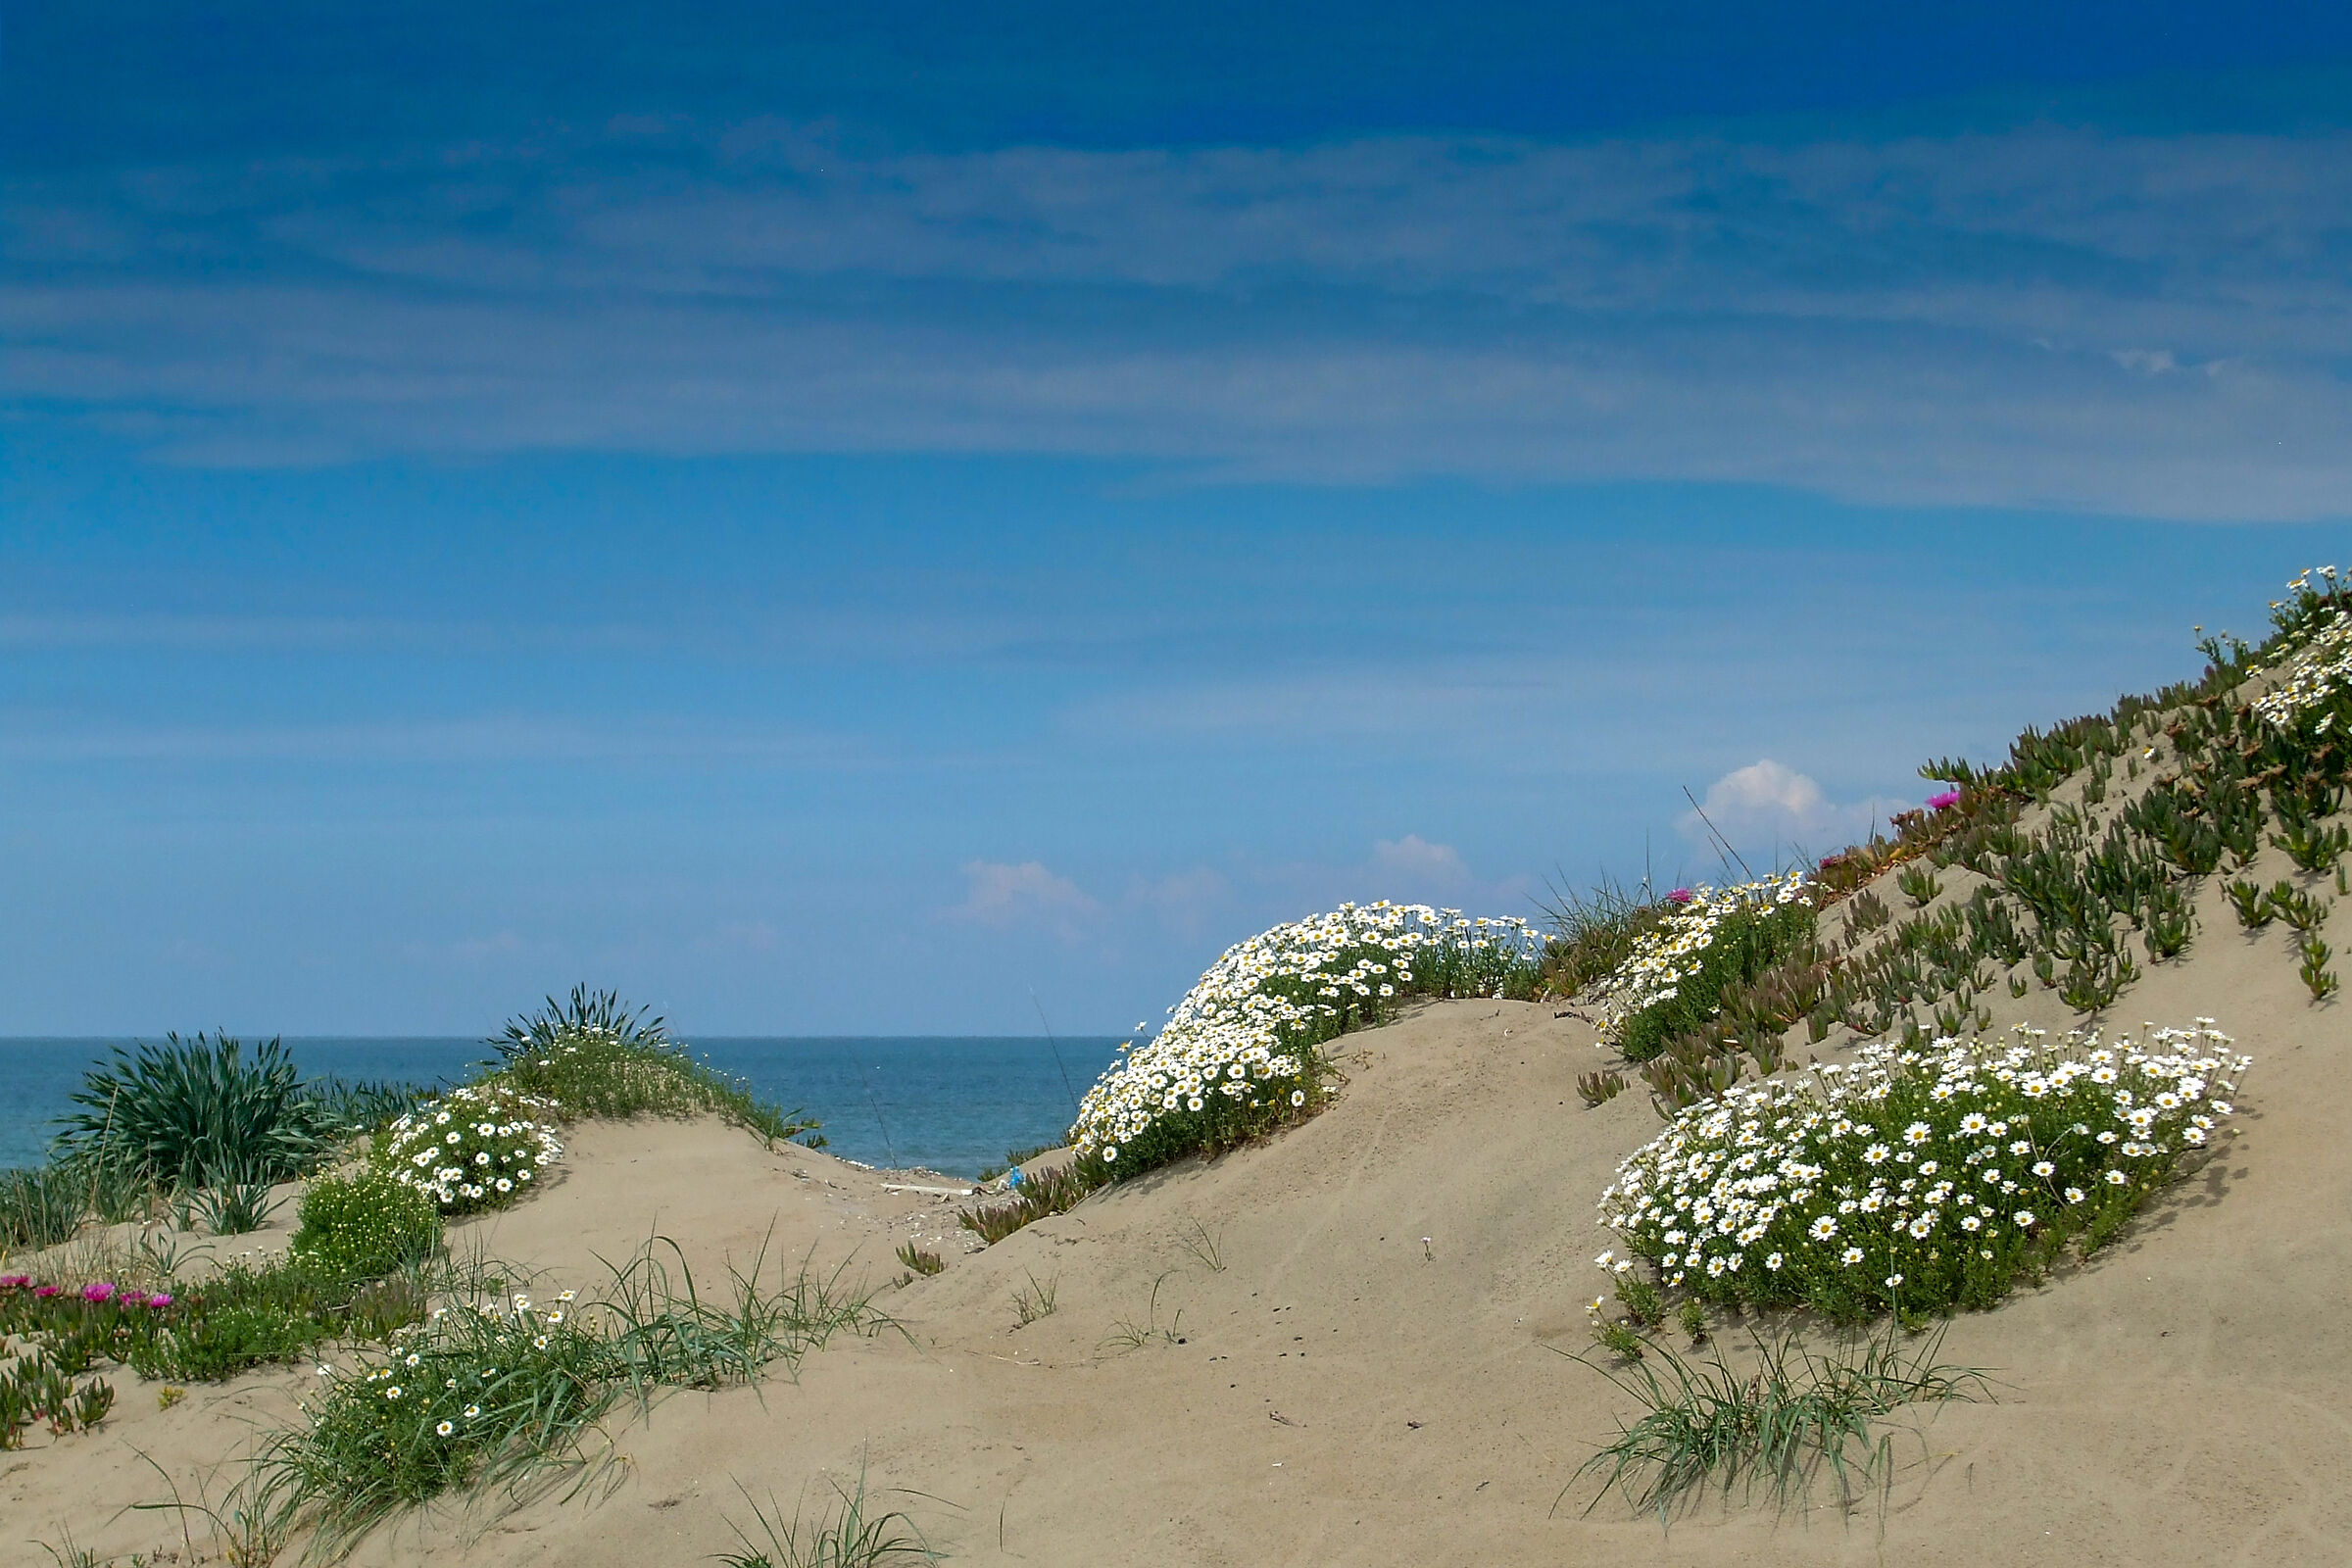 The look beyond the dunes...